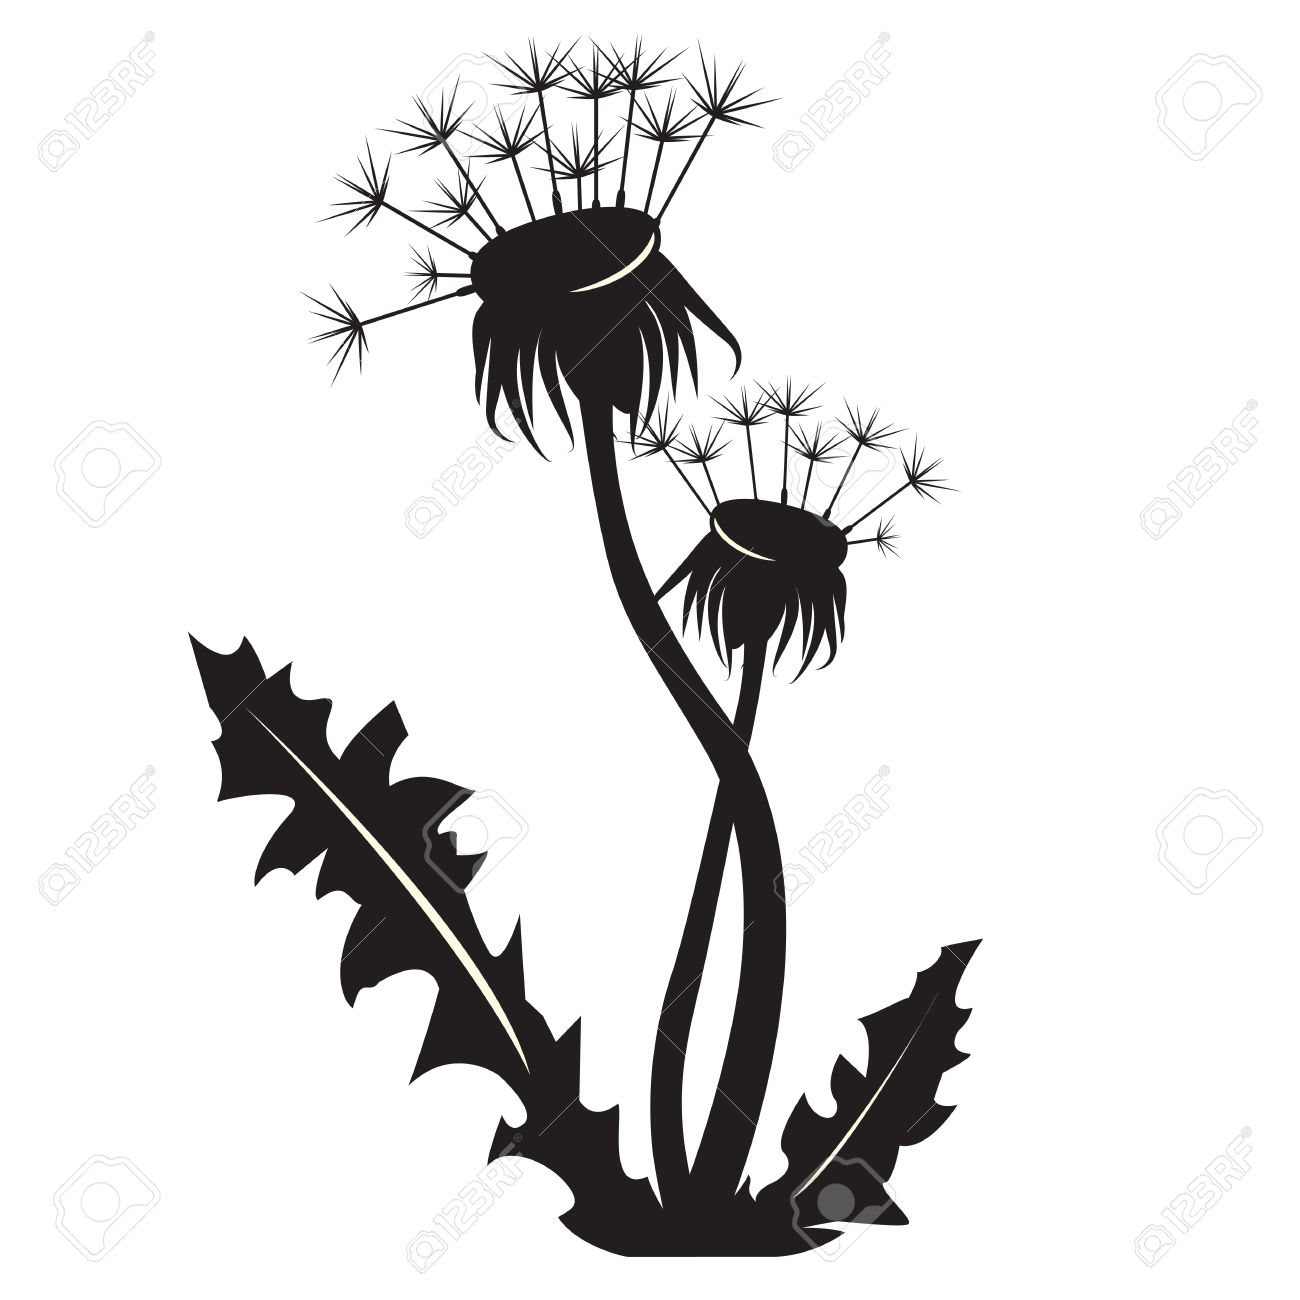 Dandelion clipart black and white background.